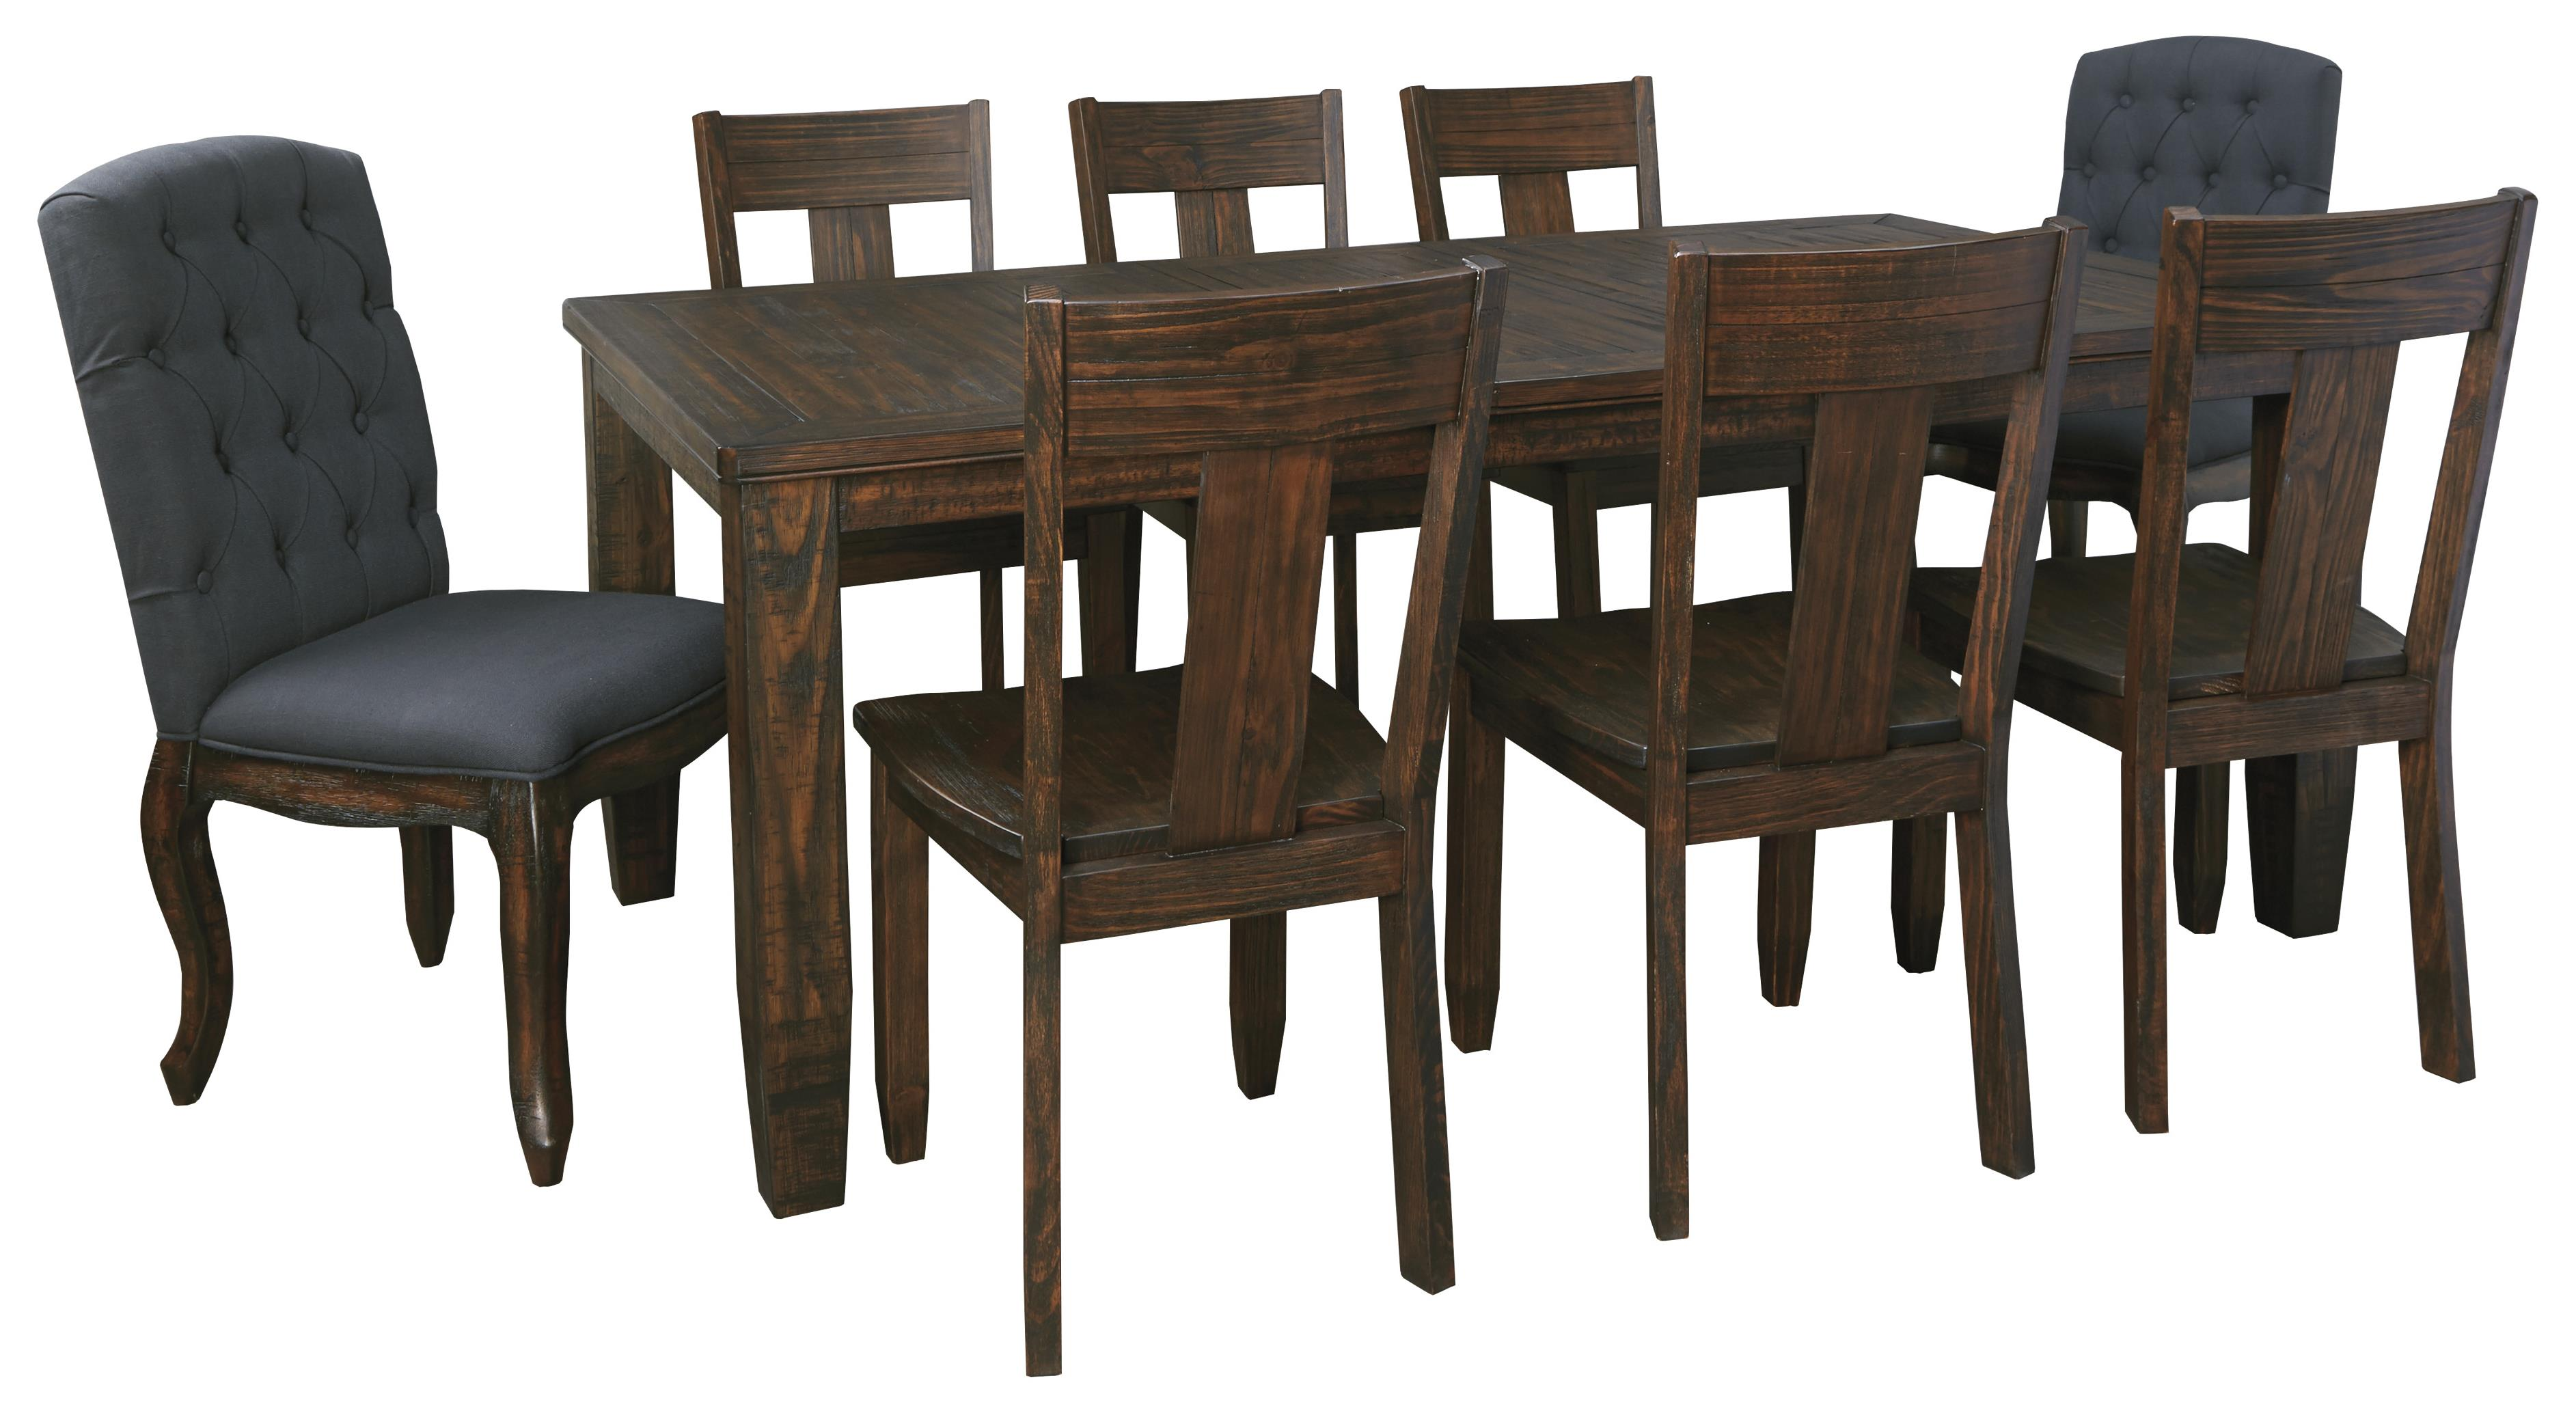 Signature Design by Ashley Trudell 9-Piece Rectangular Dining Table Set - Item Number: D658-35+2x02+6x01